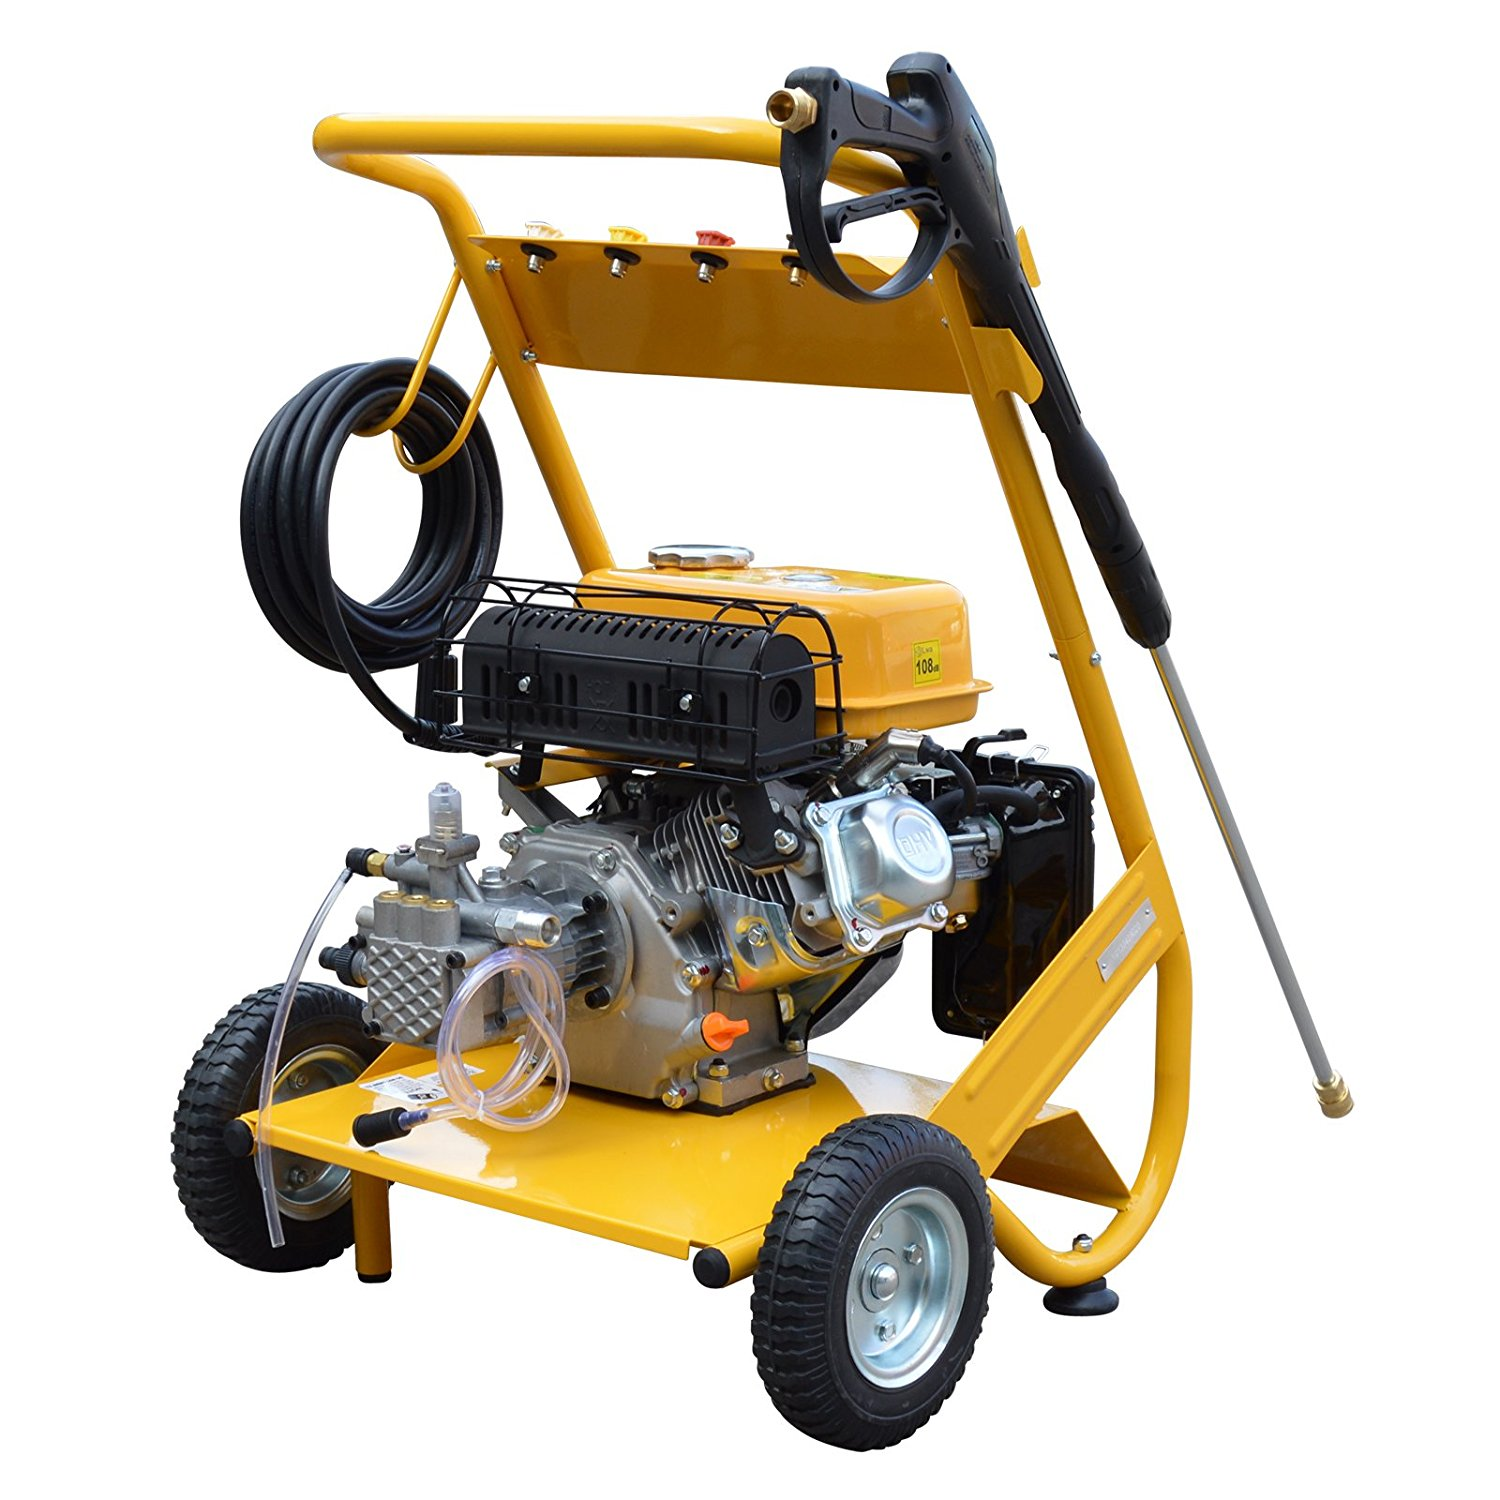 Wolf 200 psi Petrol Pressure Washer Review